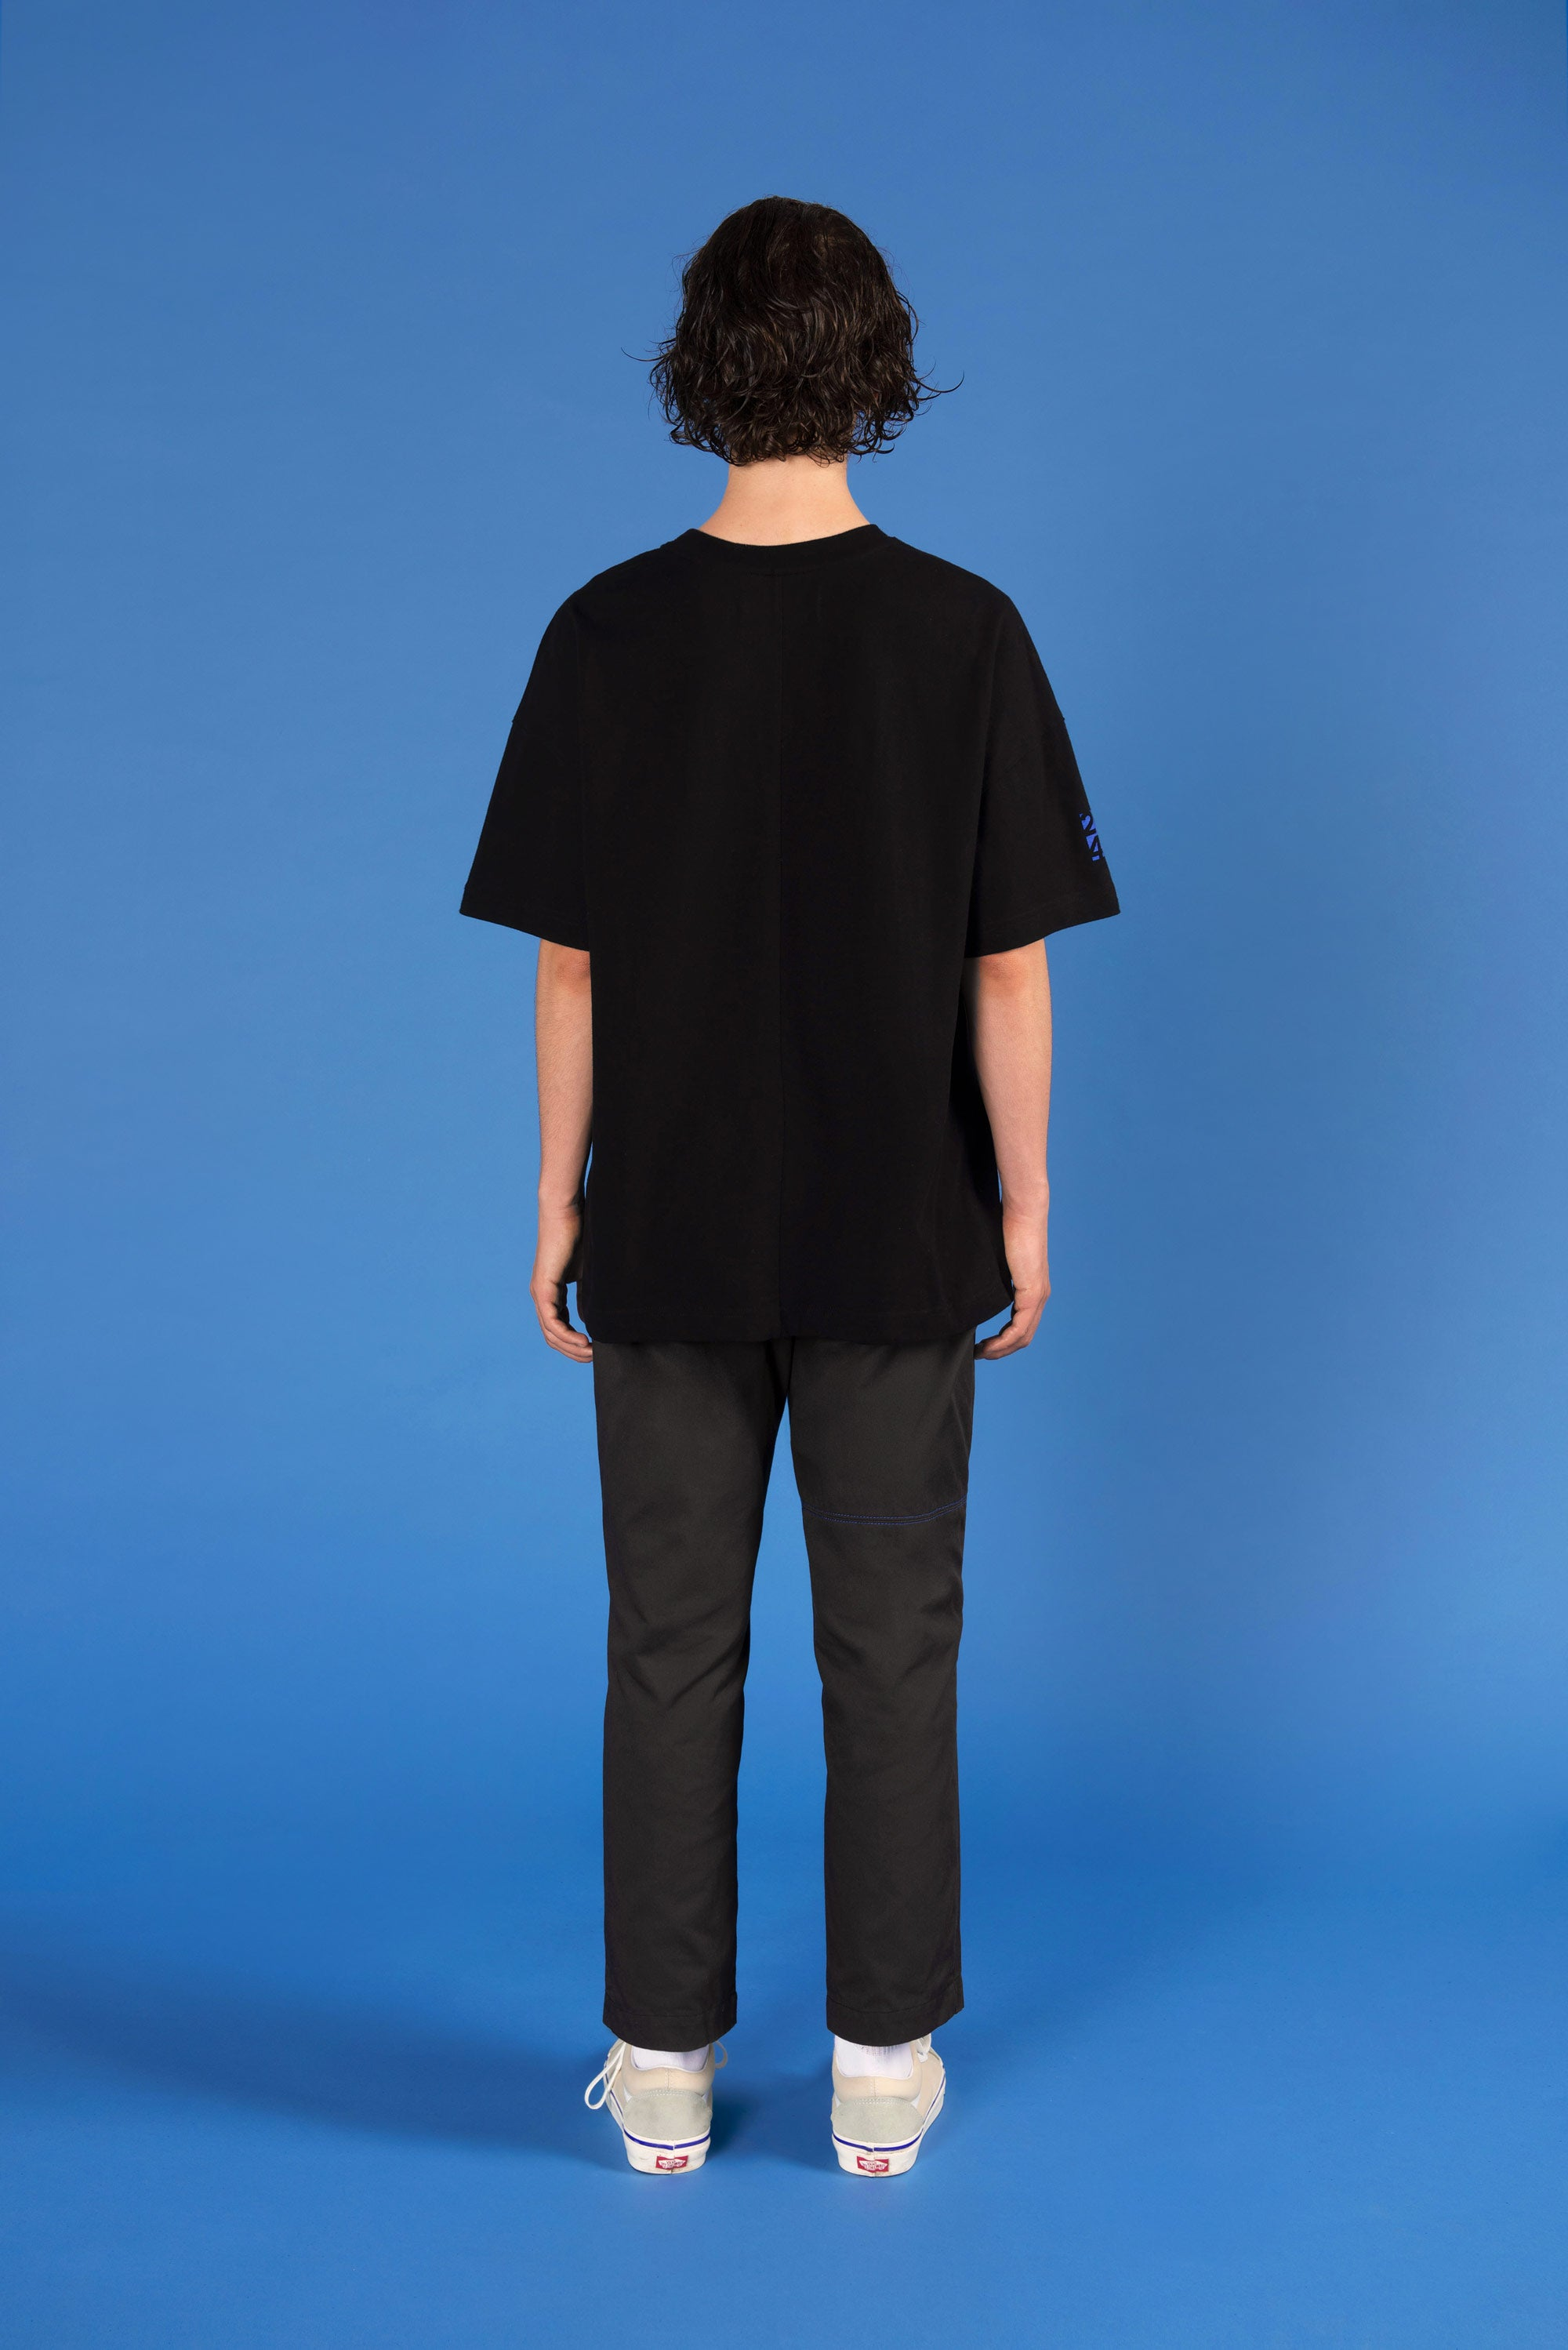 'Woman Silhouette' T-shirt (Black)